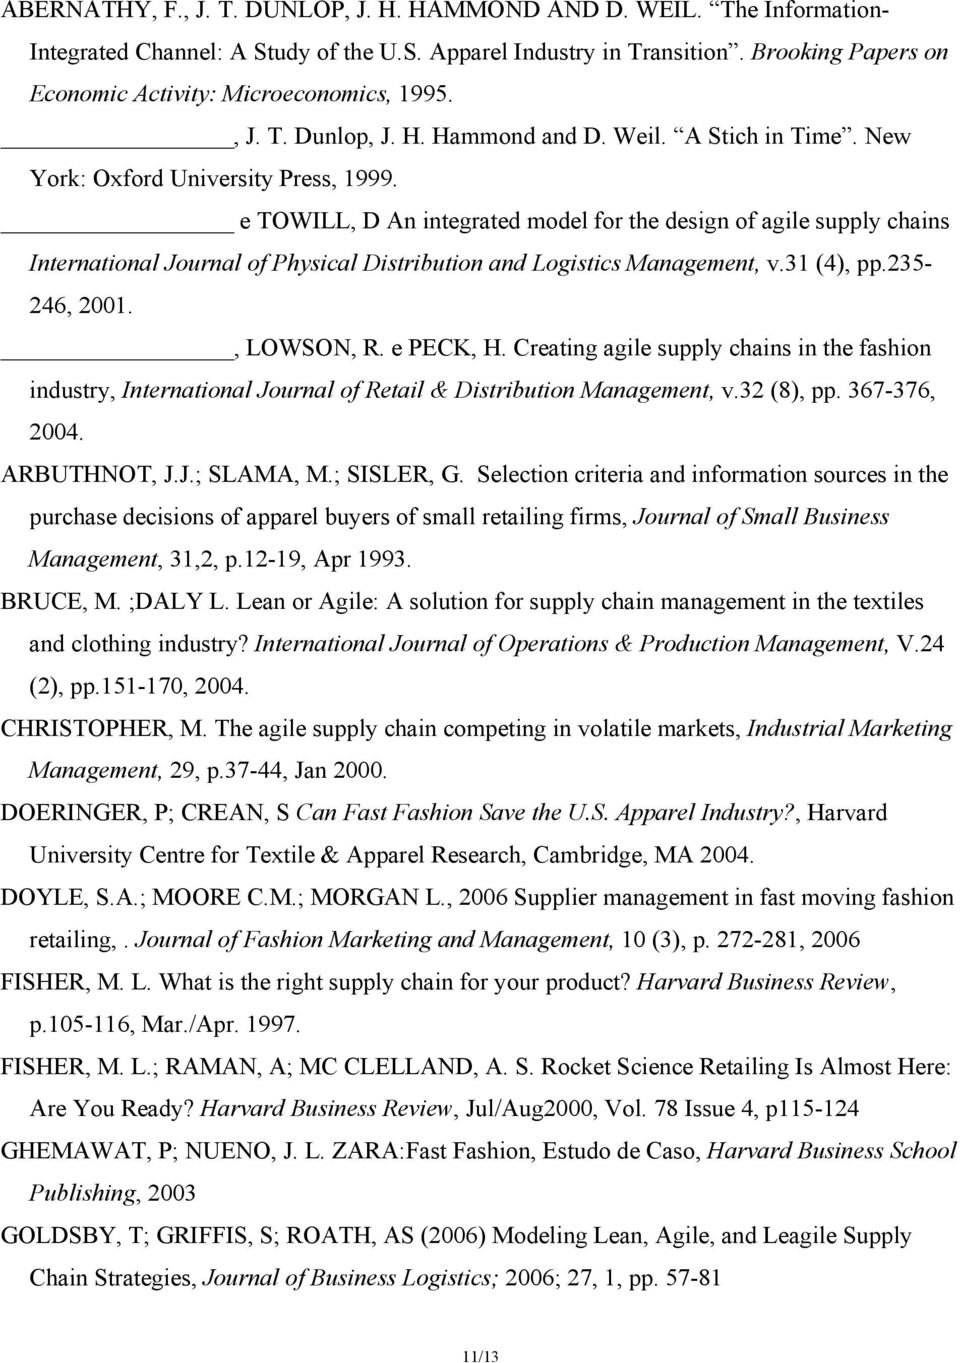 e TOWILL, D An integrated model for the design of agile supply chains International Journal of Physical Distribution and Logistics Management, v.31 (4), pp.235-246, 2001., LOWSON, R. e PECK, H.